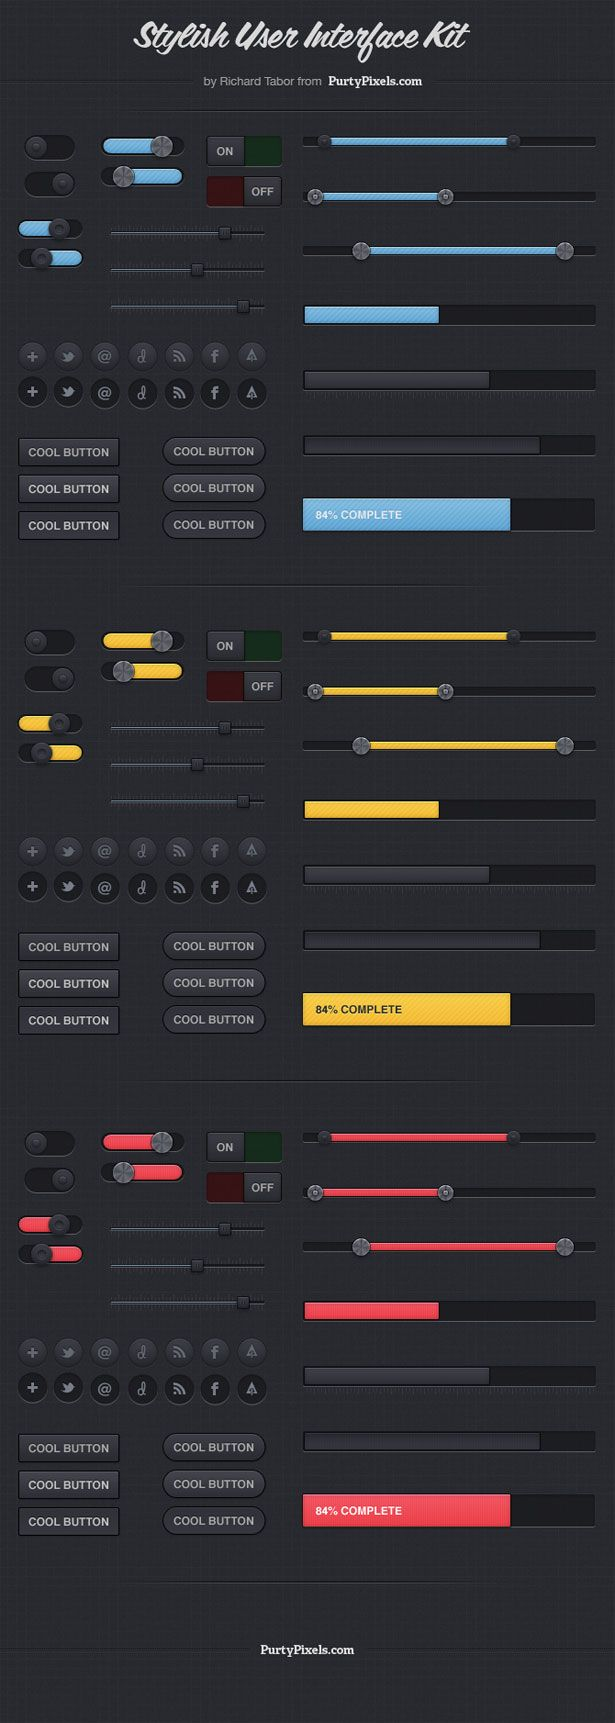 Free download: Exclusive Stylish User Interface Kit (PSD) | Webdesigner Depot - via bit.ly/epinner